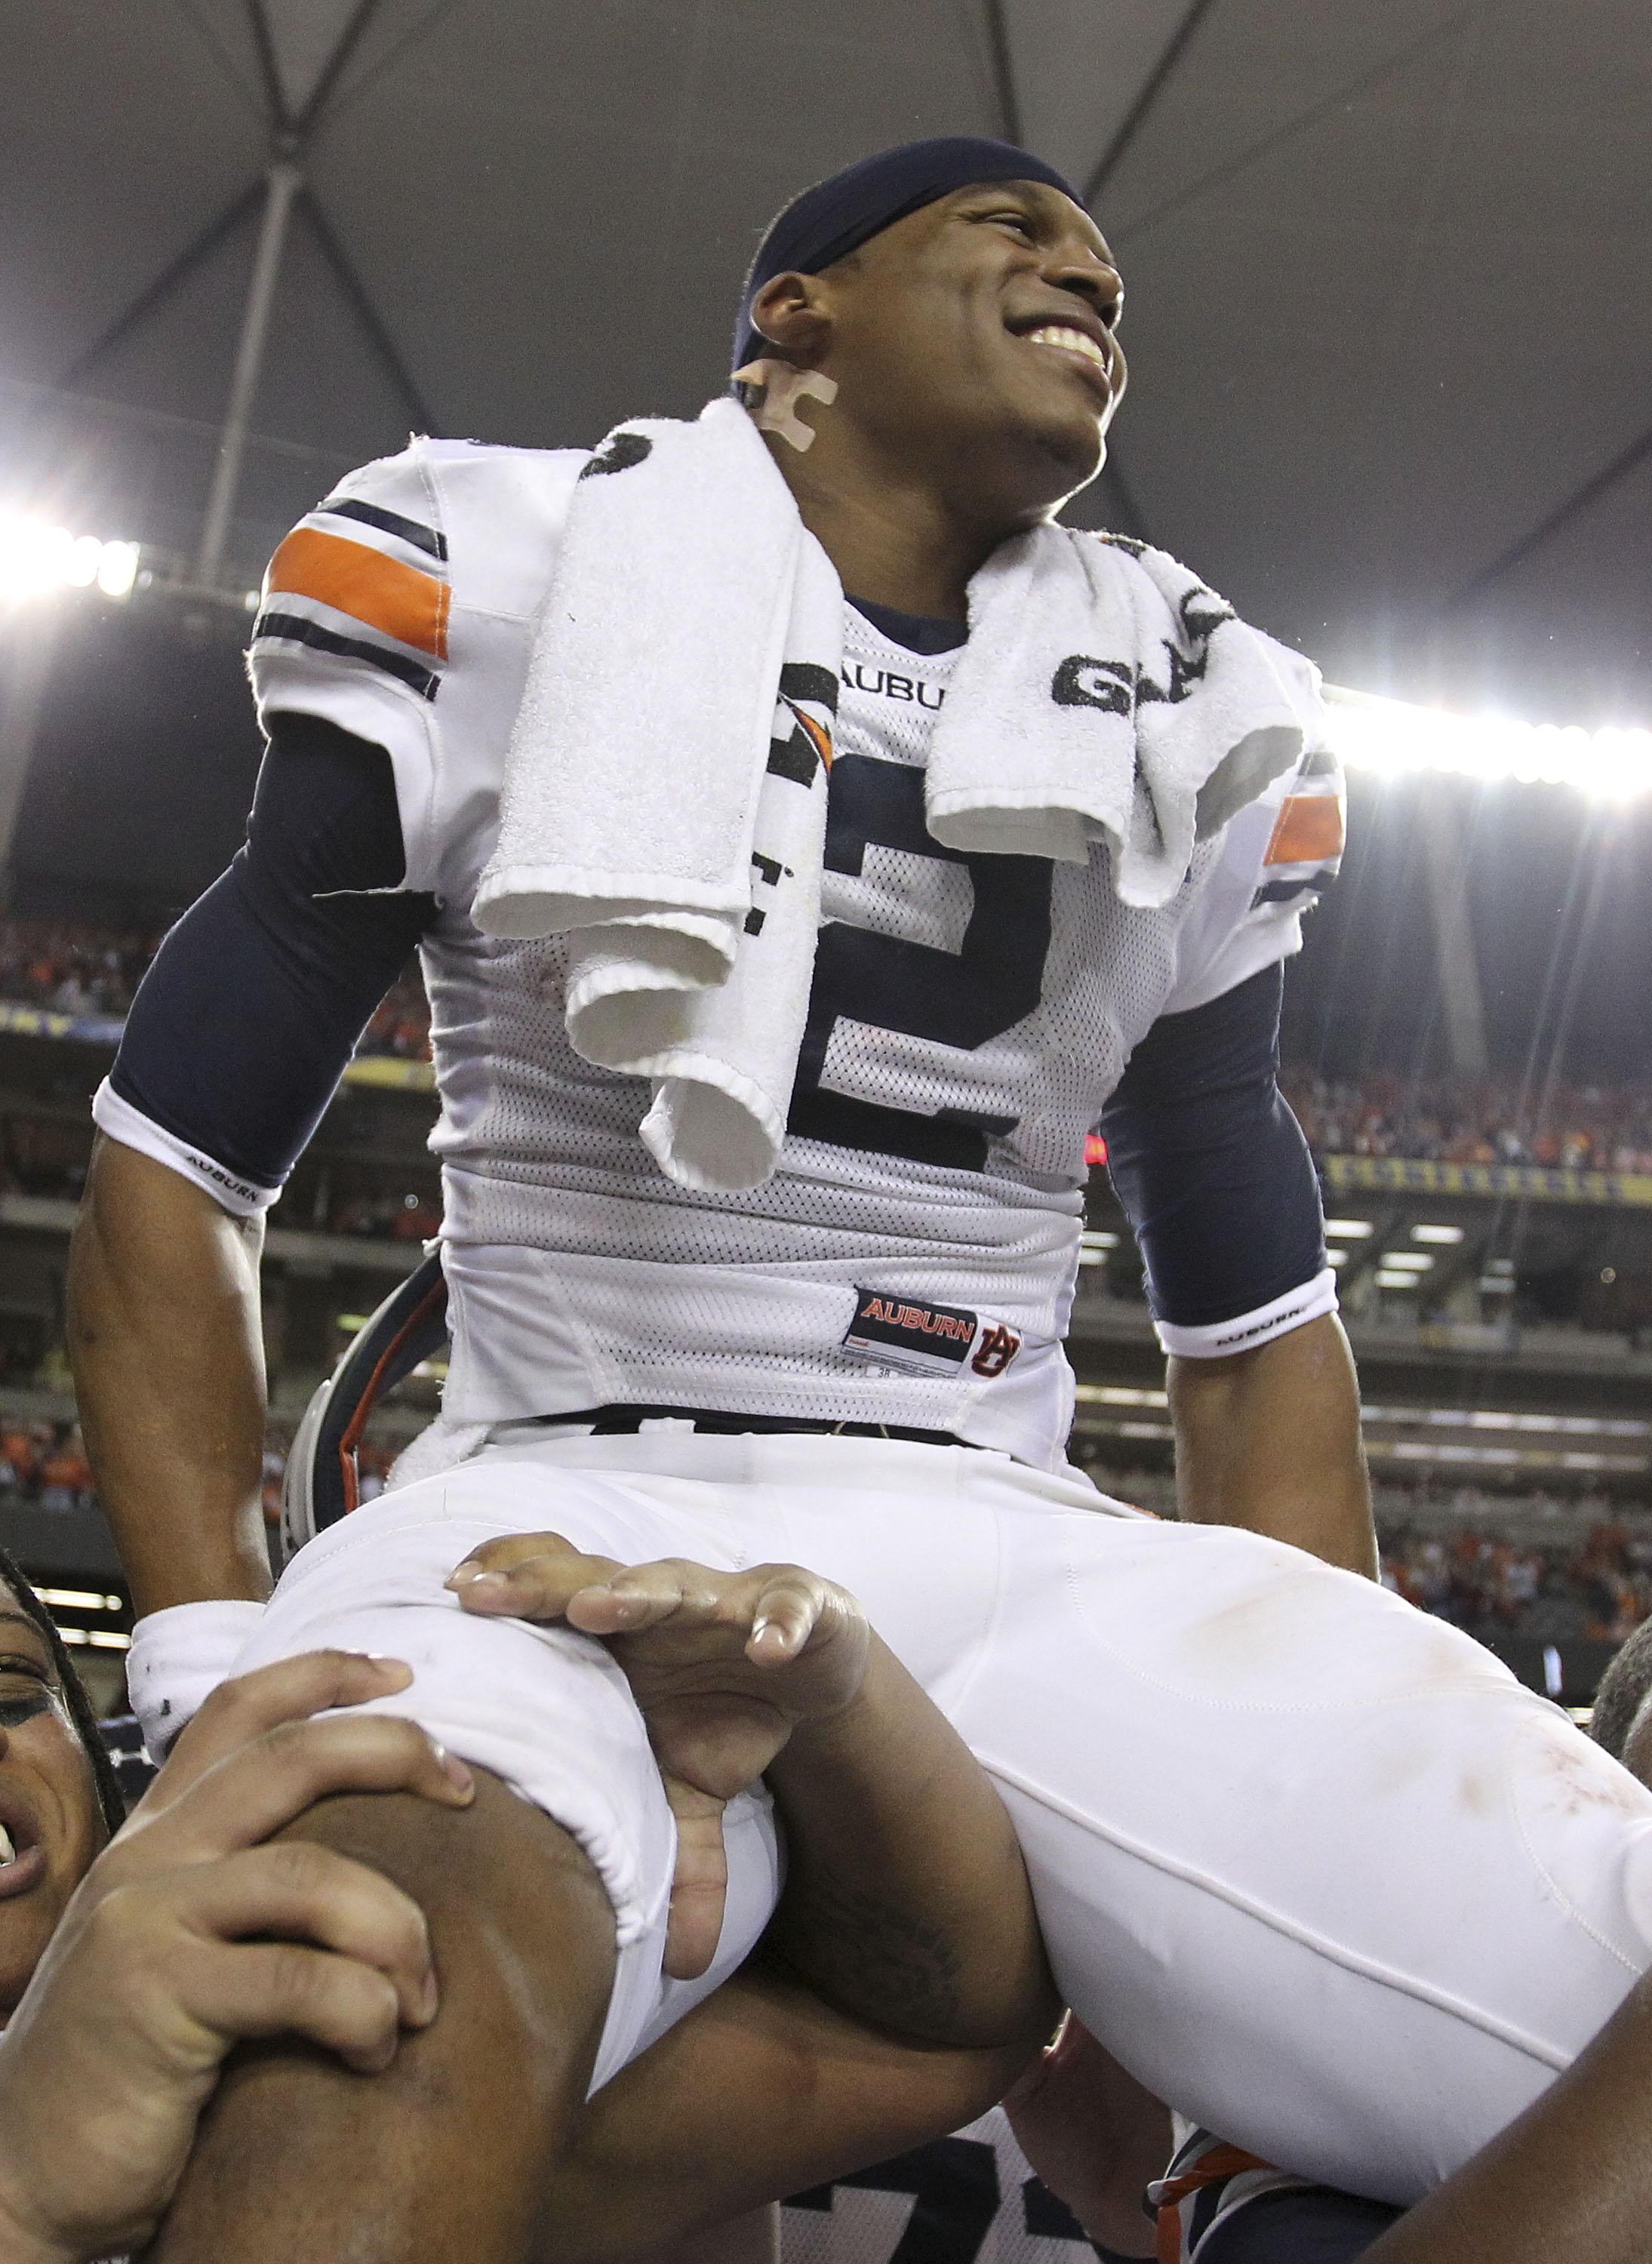 ATLANTA - DECEMBER 04:  Quarterback Cam Newton #2 of the Auburn Tigers is carried on the field after the 2010 SEC Championship against the South Carolina Gamecocks at Georgia Dome on December 4, 2010 in Atlanta, Georgia.  The Tigers beat the Gamecocks 56-